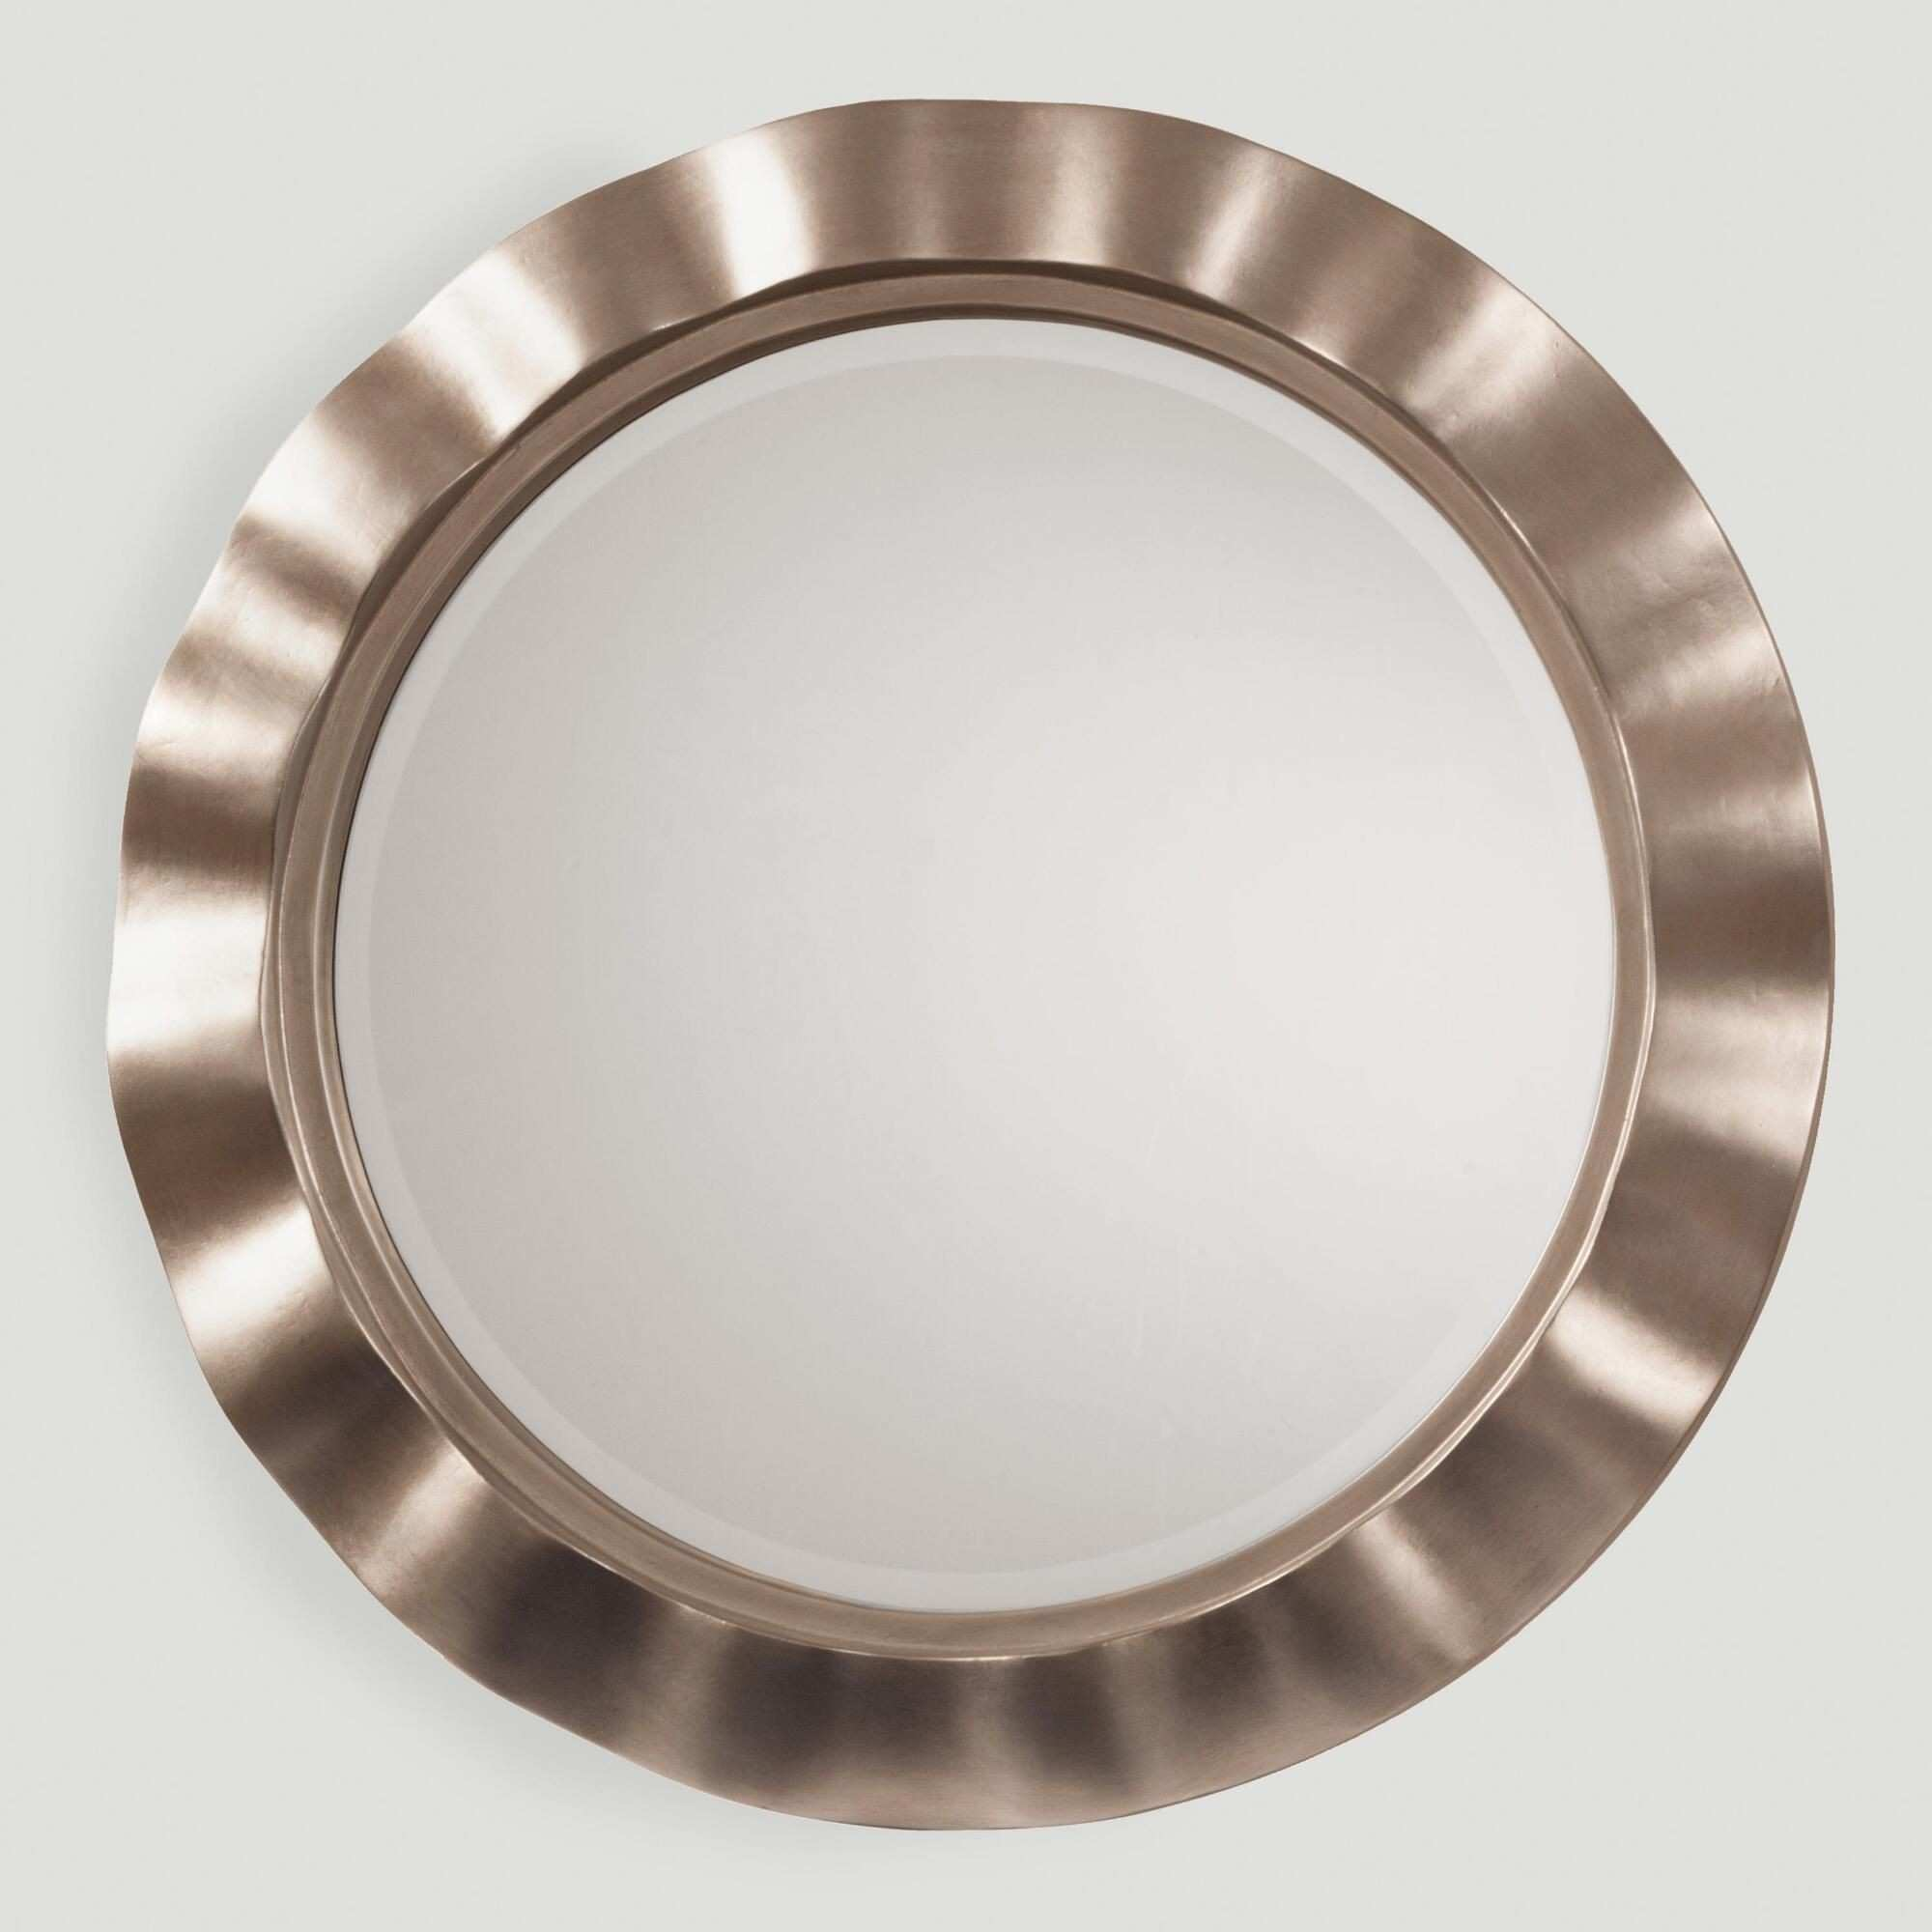 A wavy silver metal border lends eye catching texture to our